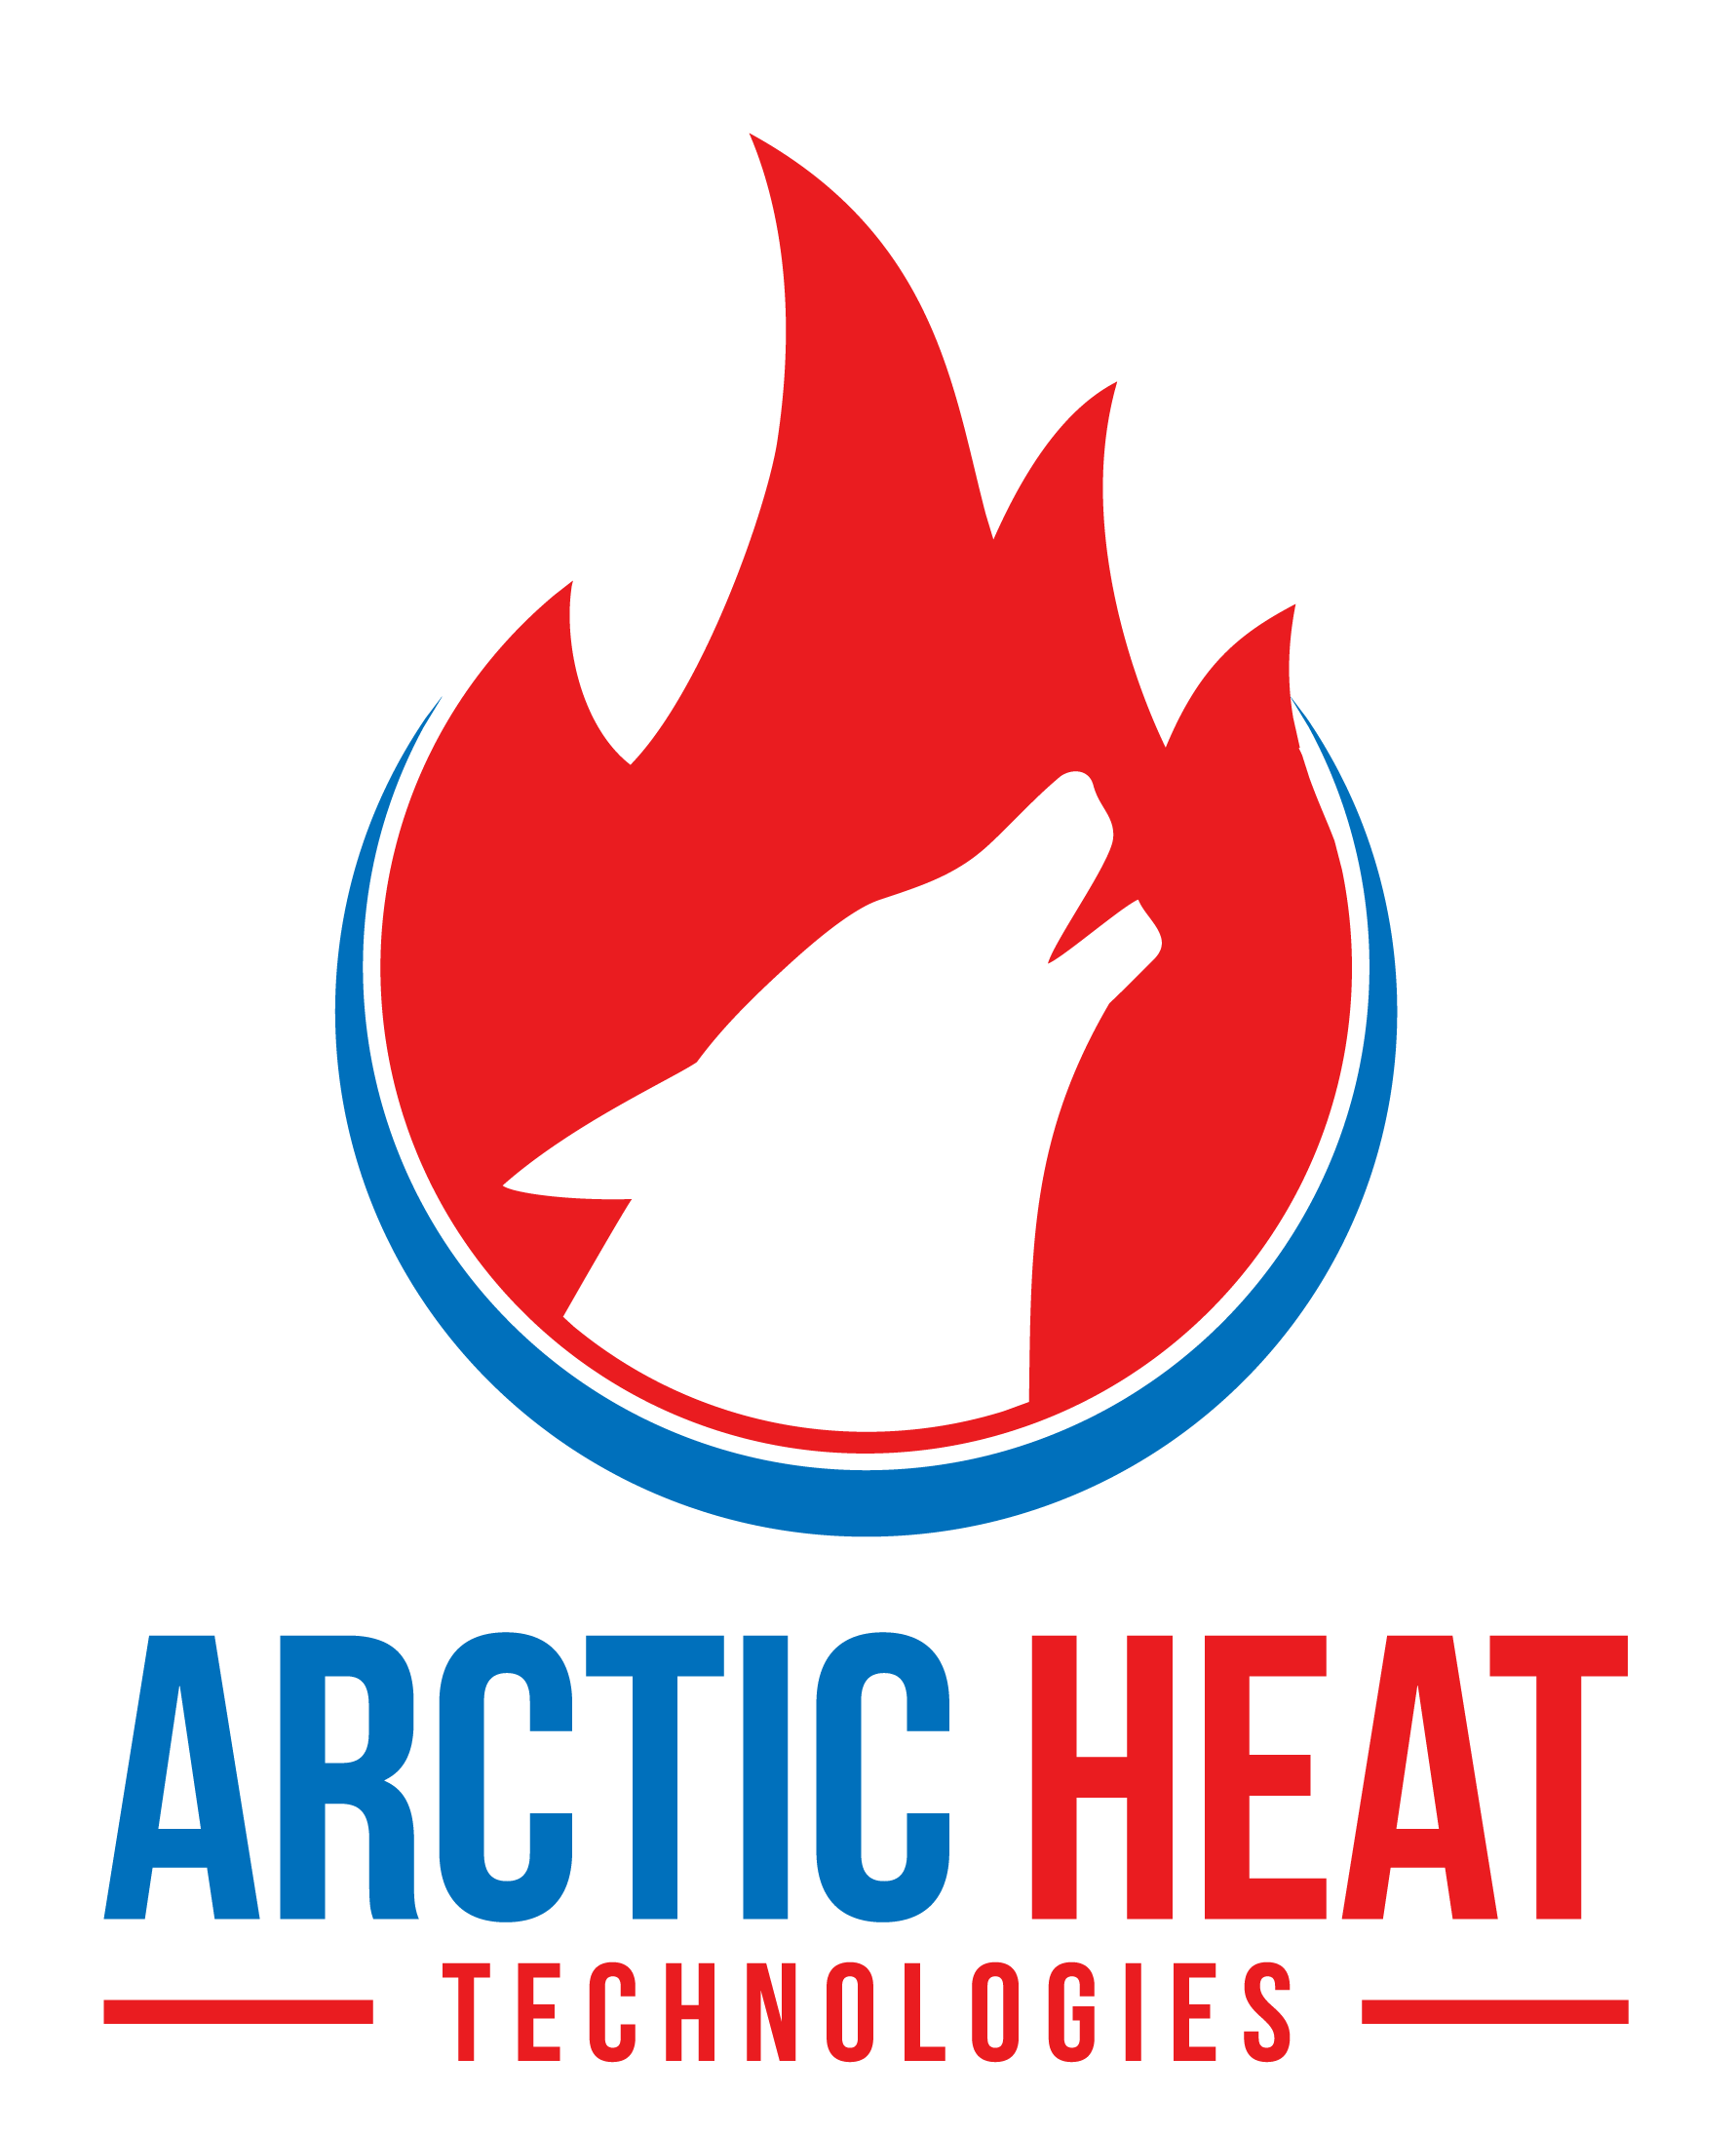 Arctic Heat Technologies, Inc. logo